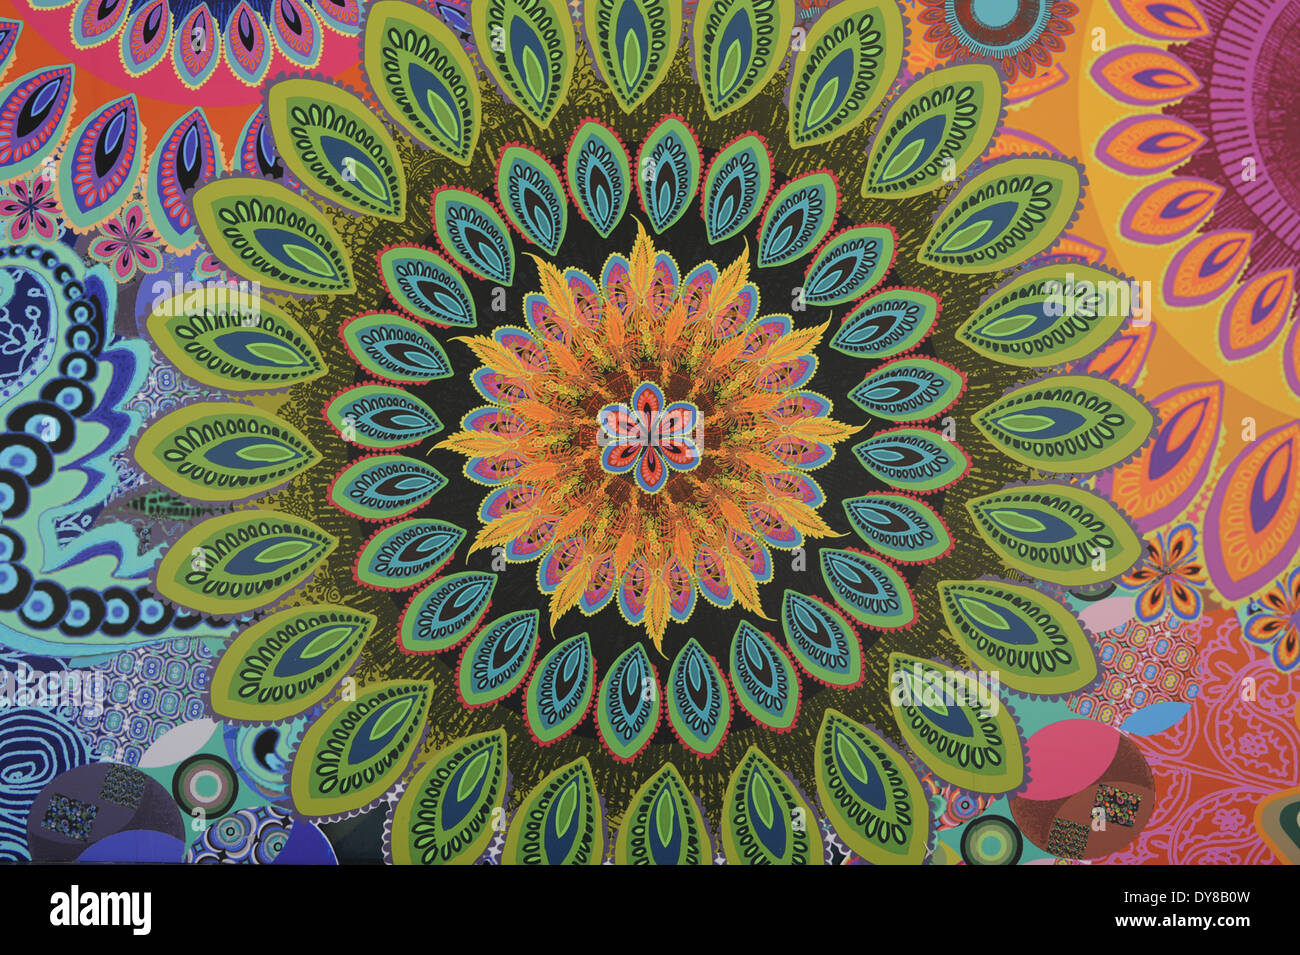 Tree Wall Mural Background Texture Colors Flower Power Psychedelic